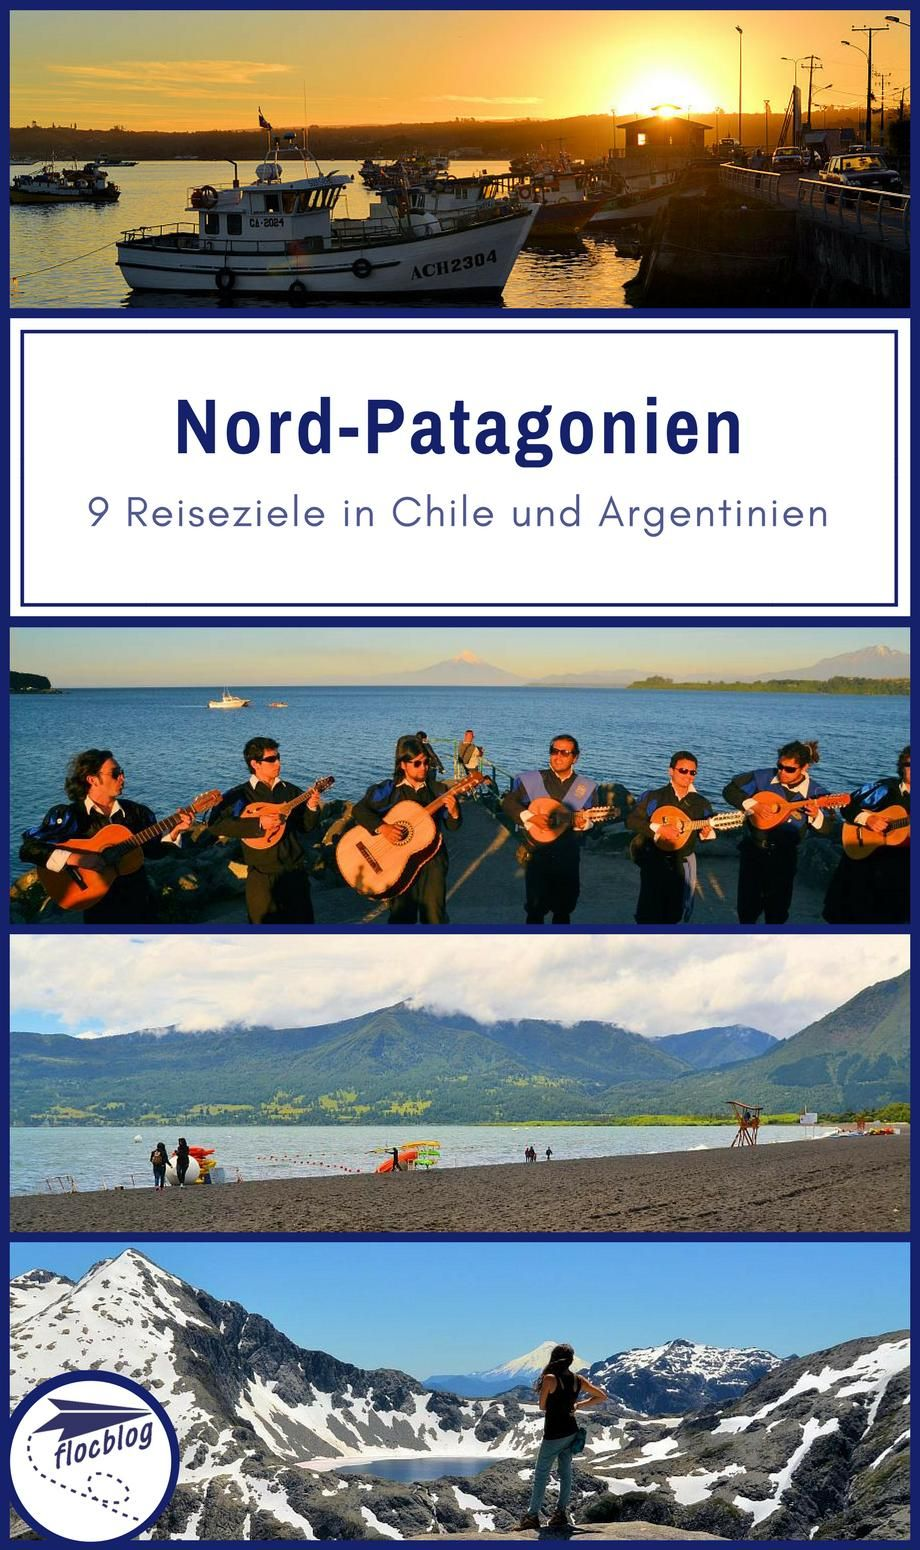 Patagonien Highlights Karte.Nord Patagonien 9 Highlights In Chile Argentinien Karte